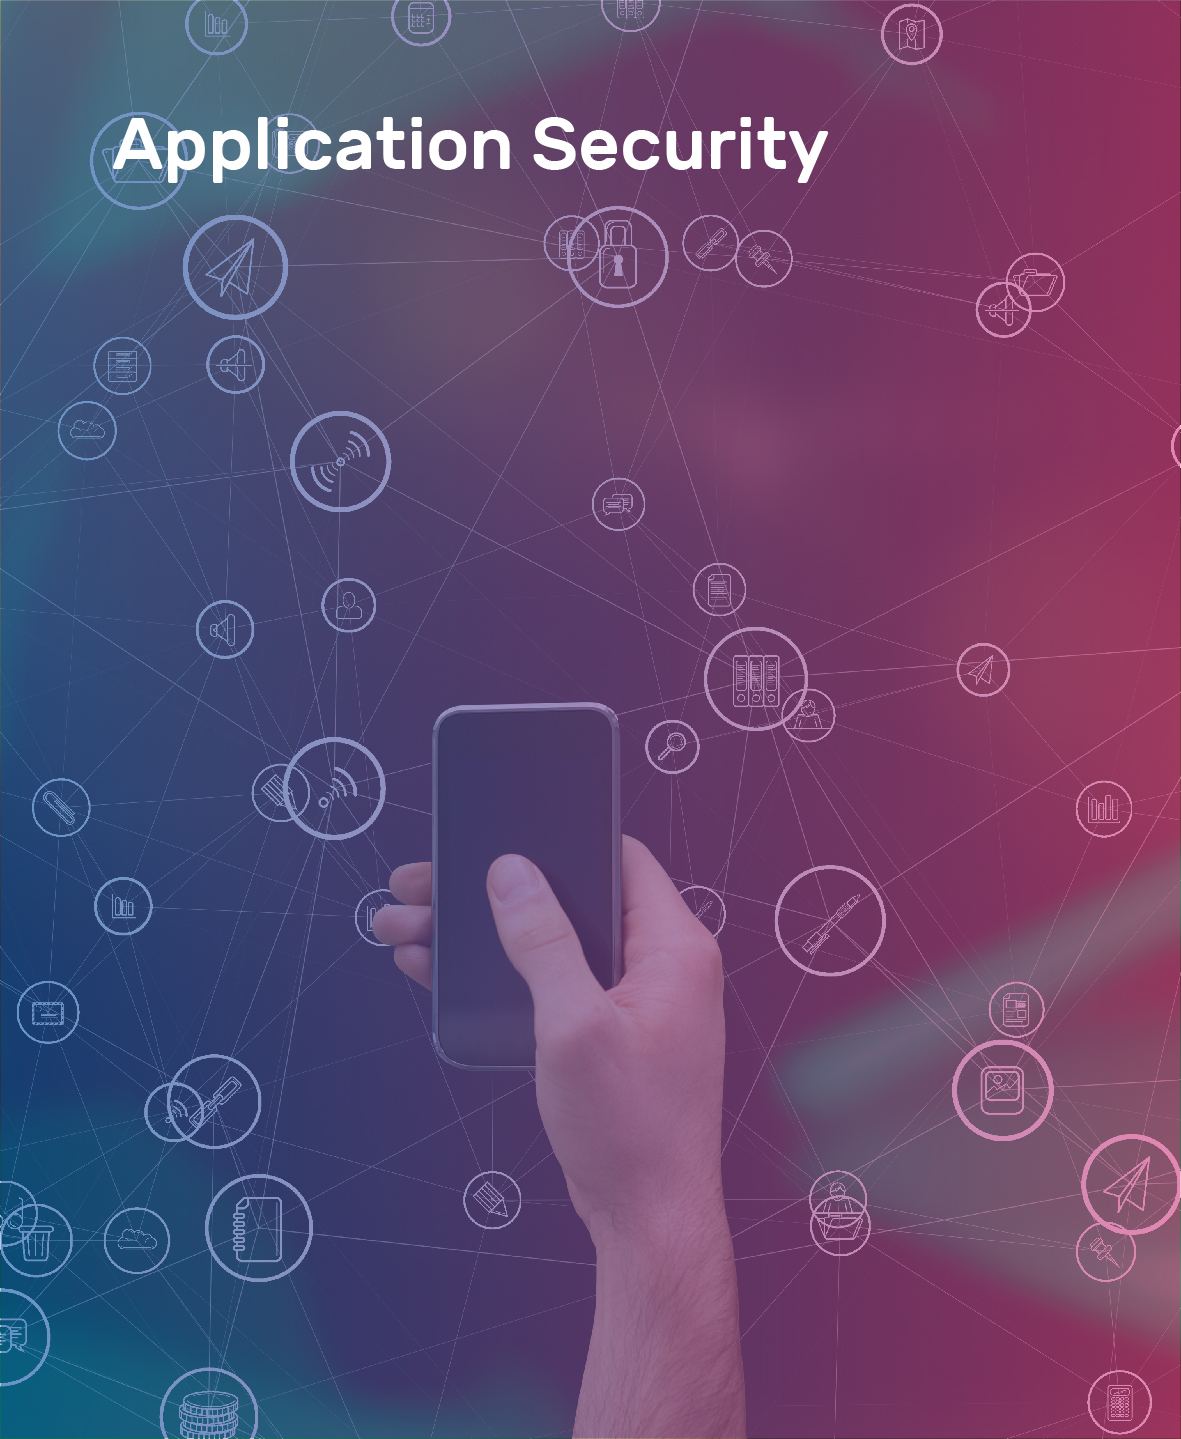 saas application security